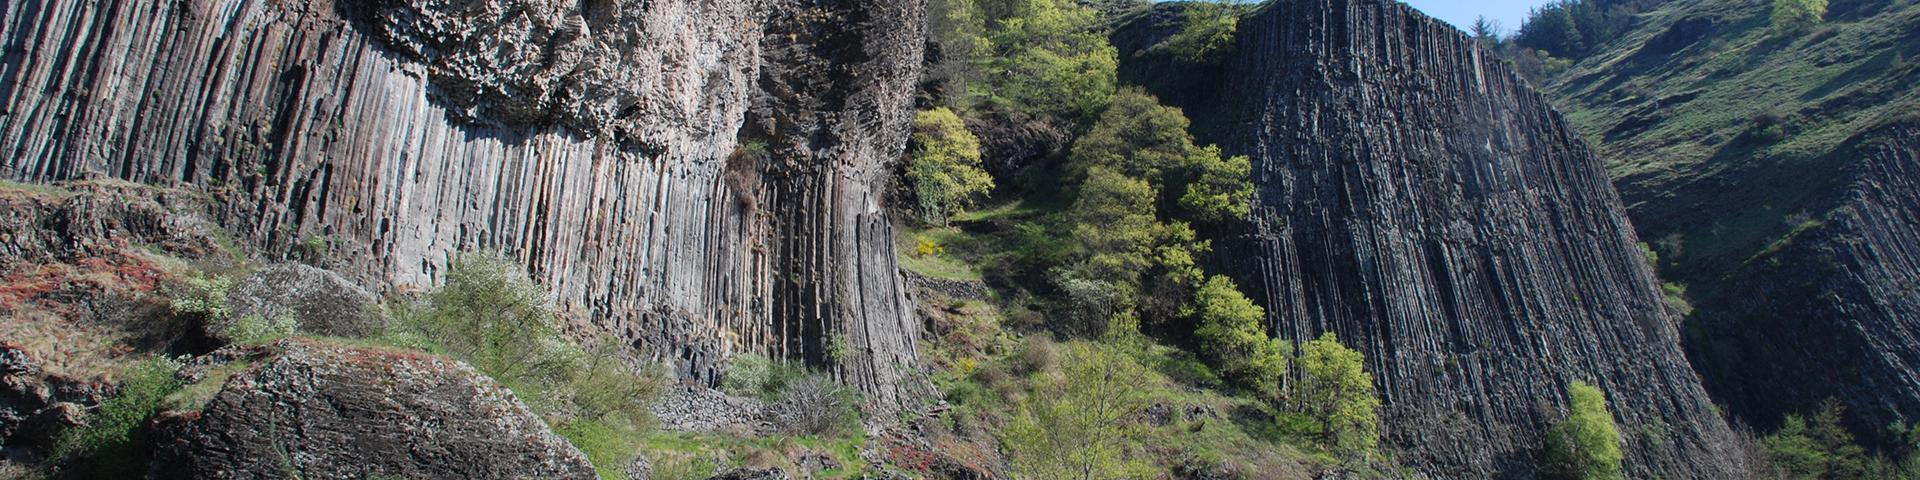 Volcanic 'organ pipes' of Prades, Haute-Loire